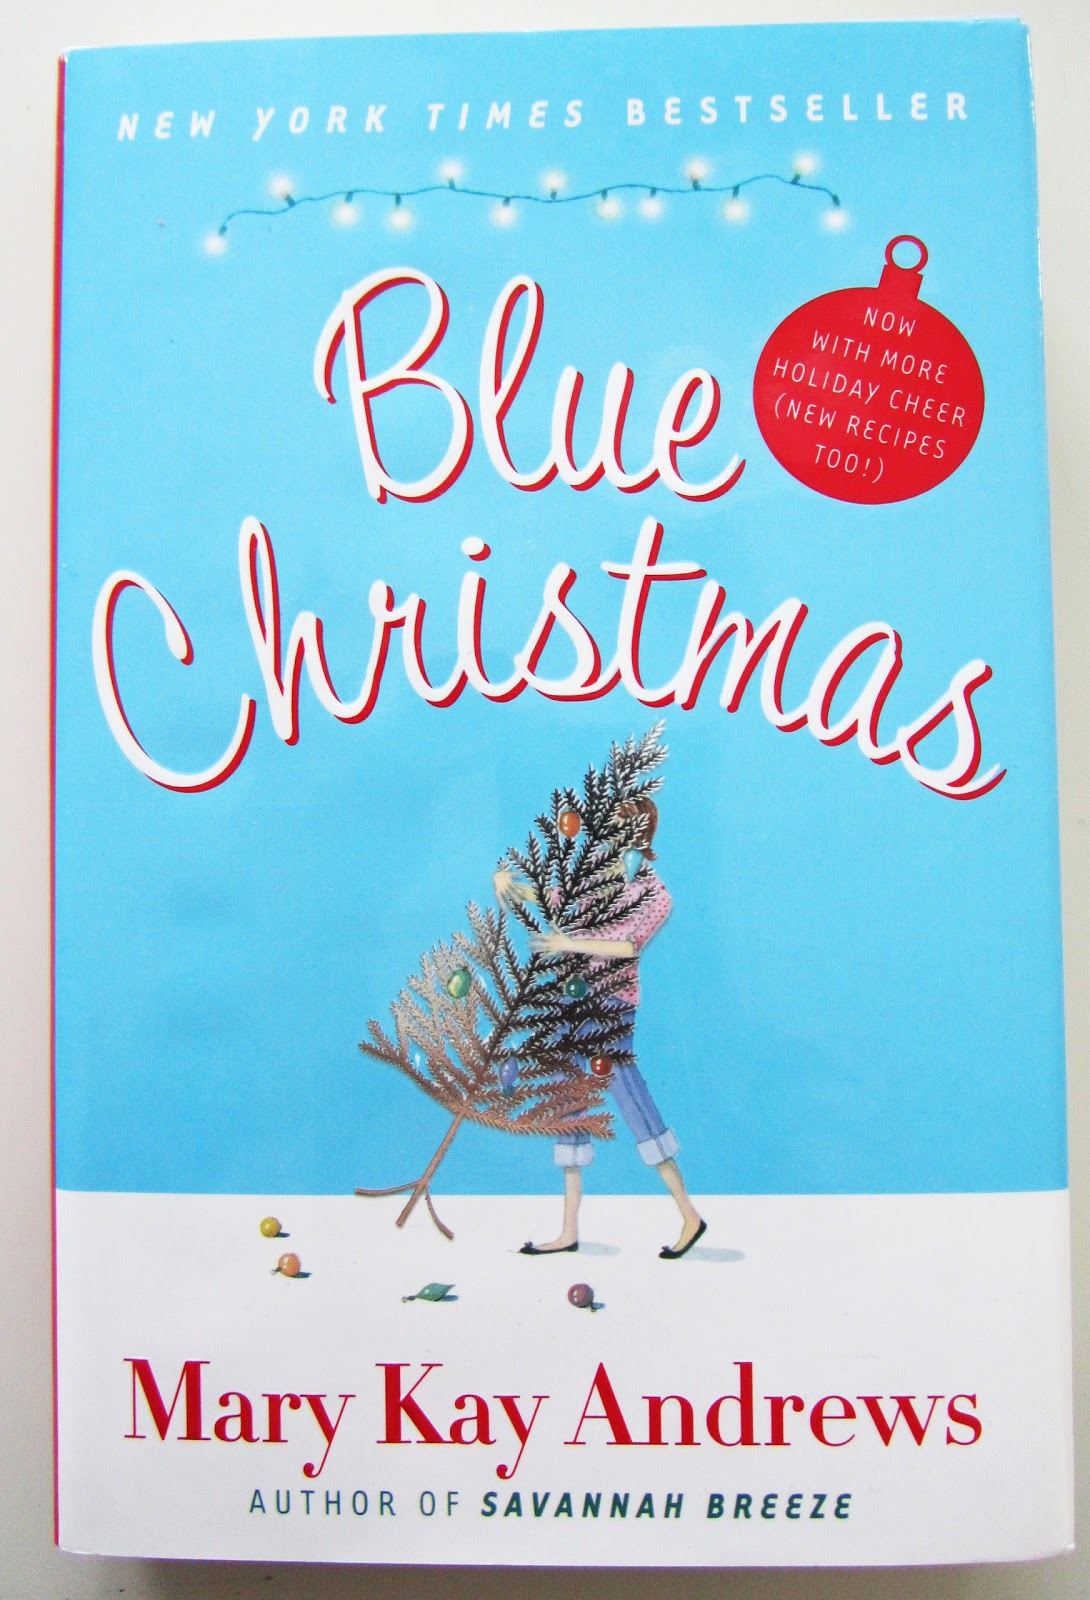 Acanthus and Acorn: Mary Kay Andrews: Blue Christmas Book Giveaway!